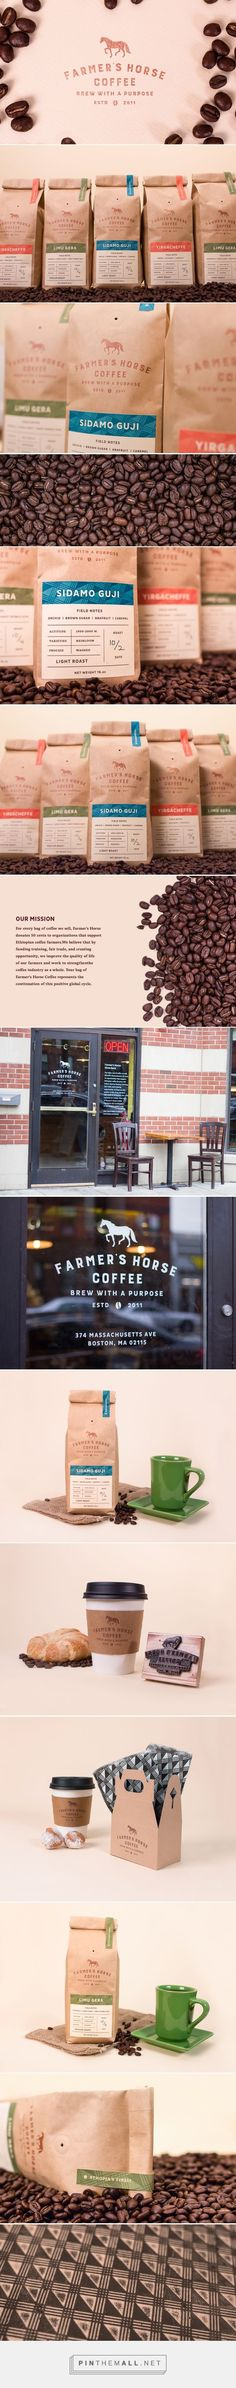 Farmer's Horse Coffee - Packaging of the World - Creative Package Design Gallery - http://www.packagingoftheworld.com/2016/11/farmers-horse-coffee.html